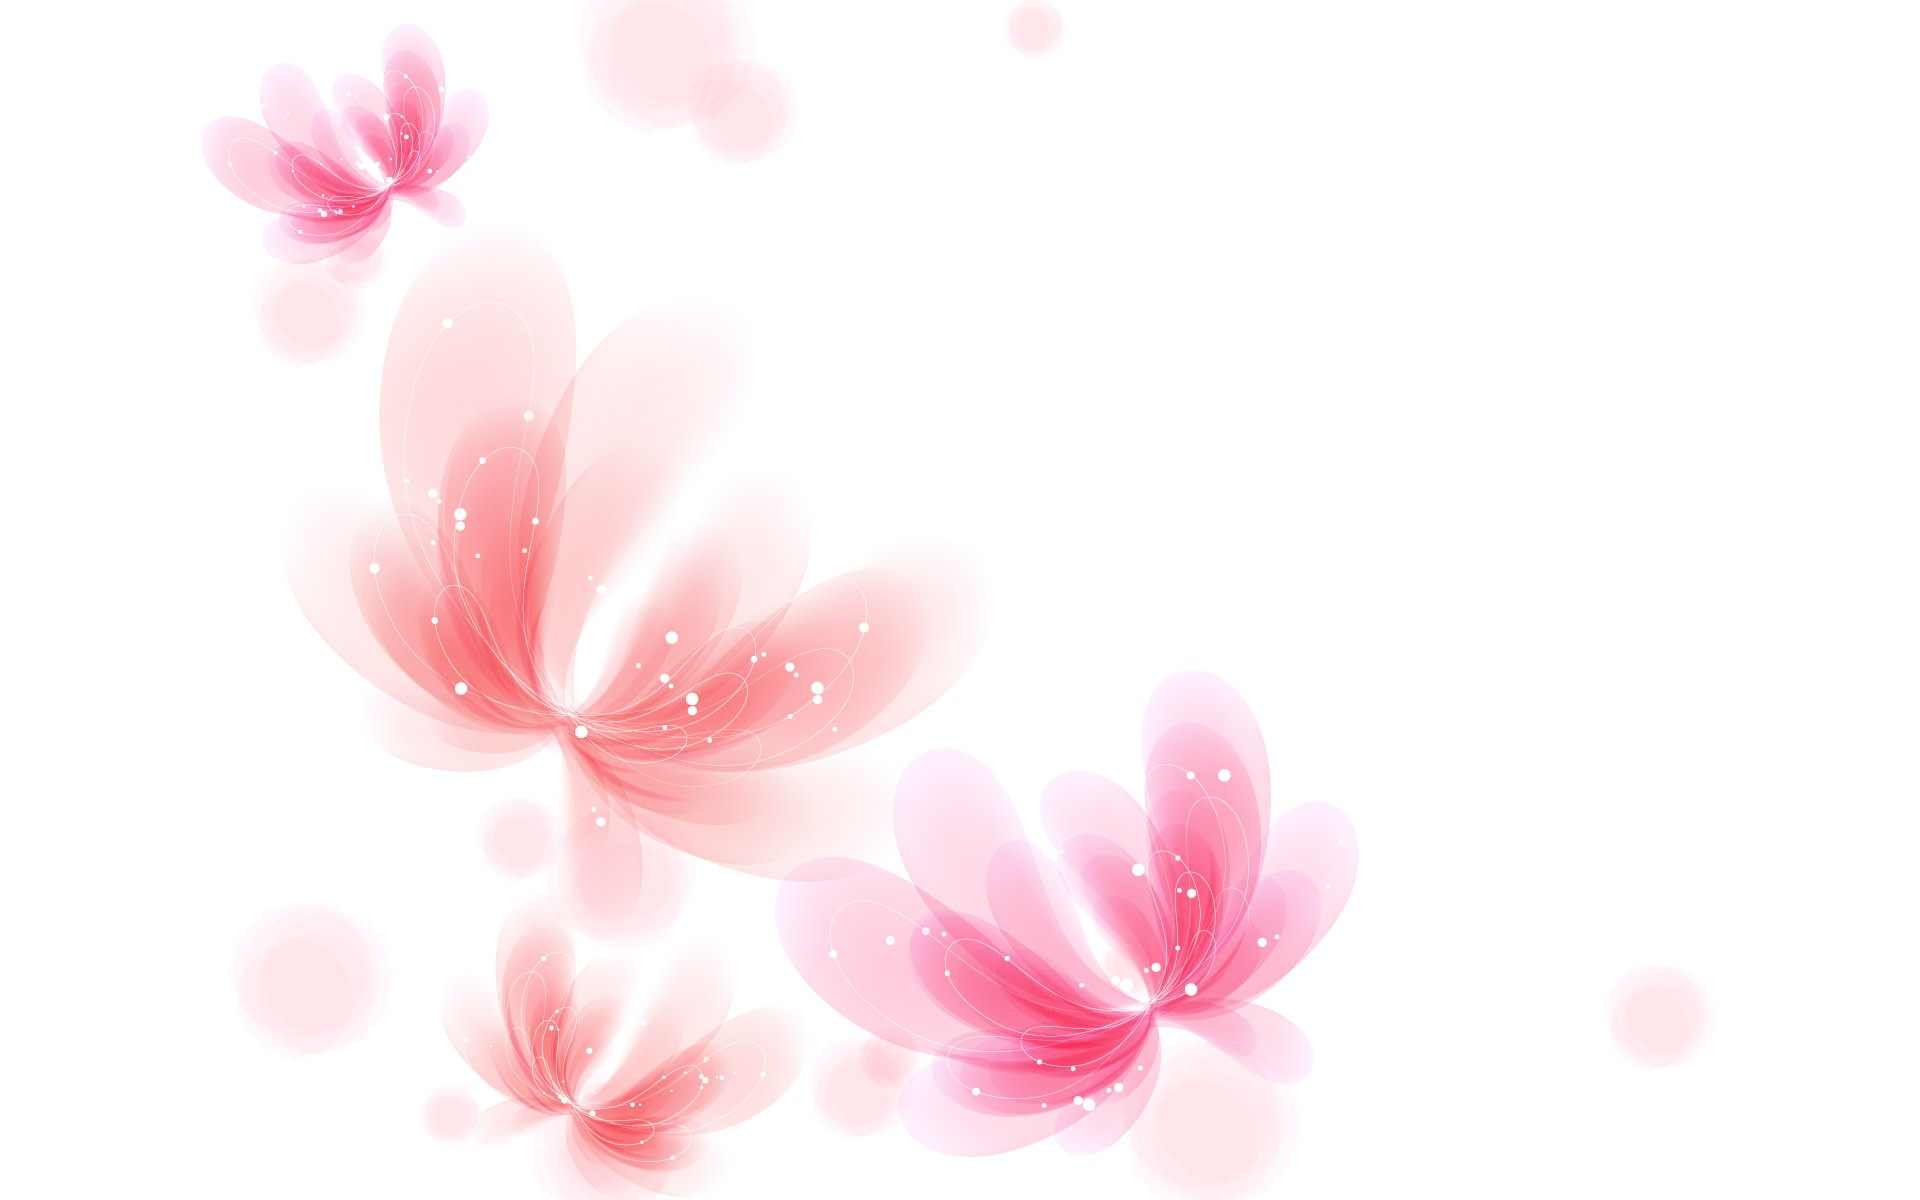 Black White And Pink Backgrounds 26 Free Hd Wallpaper